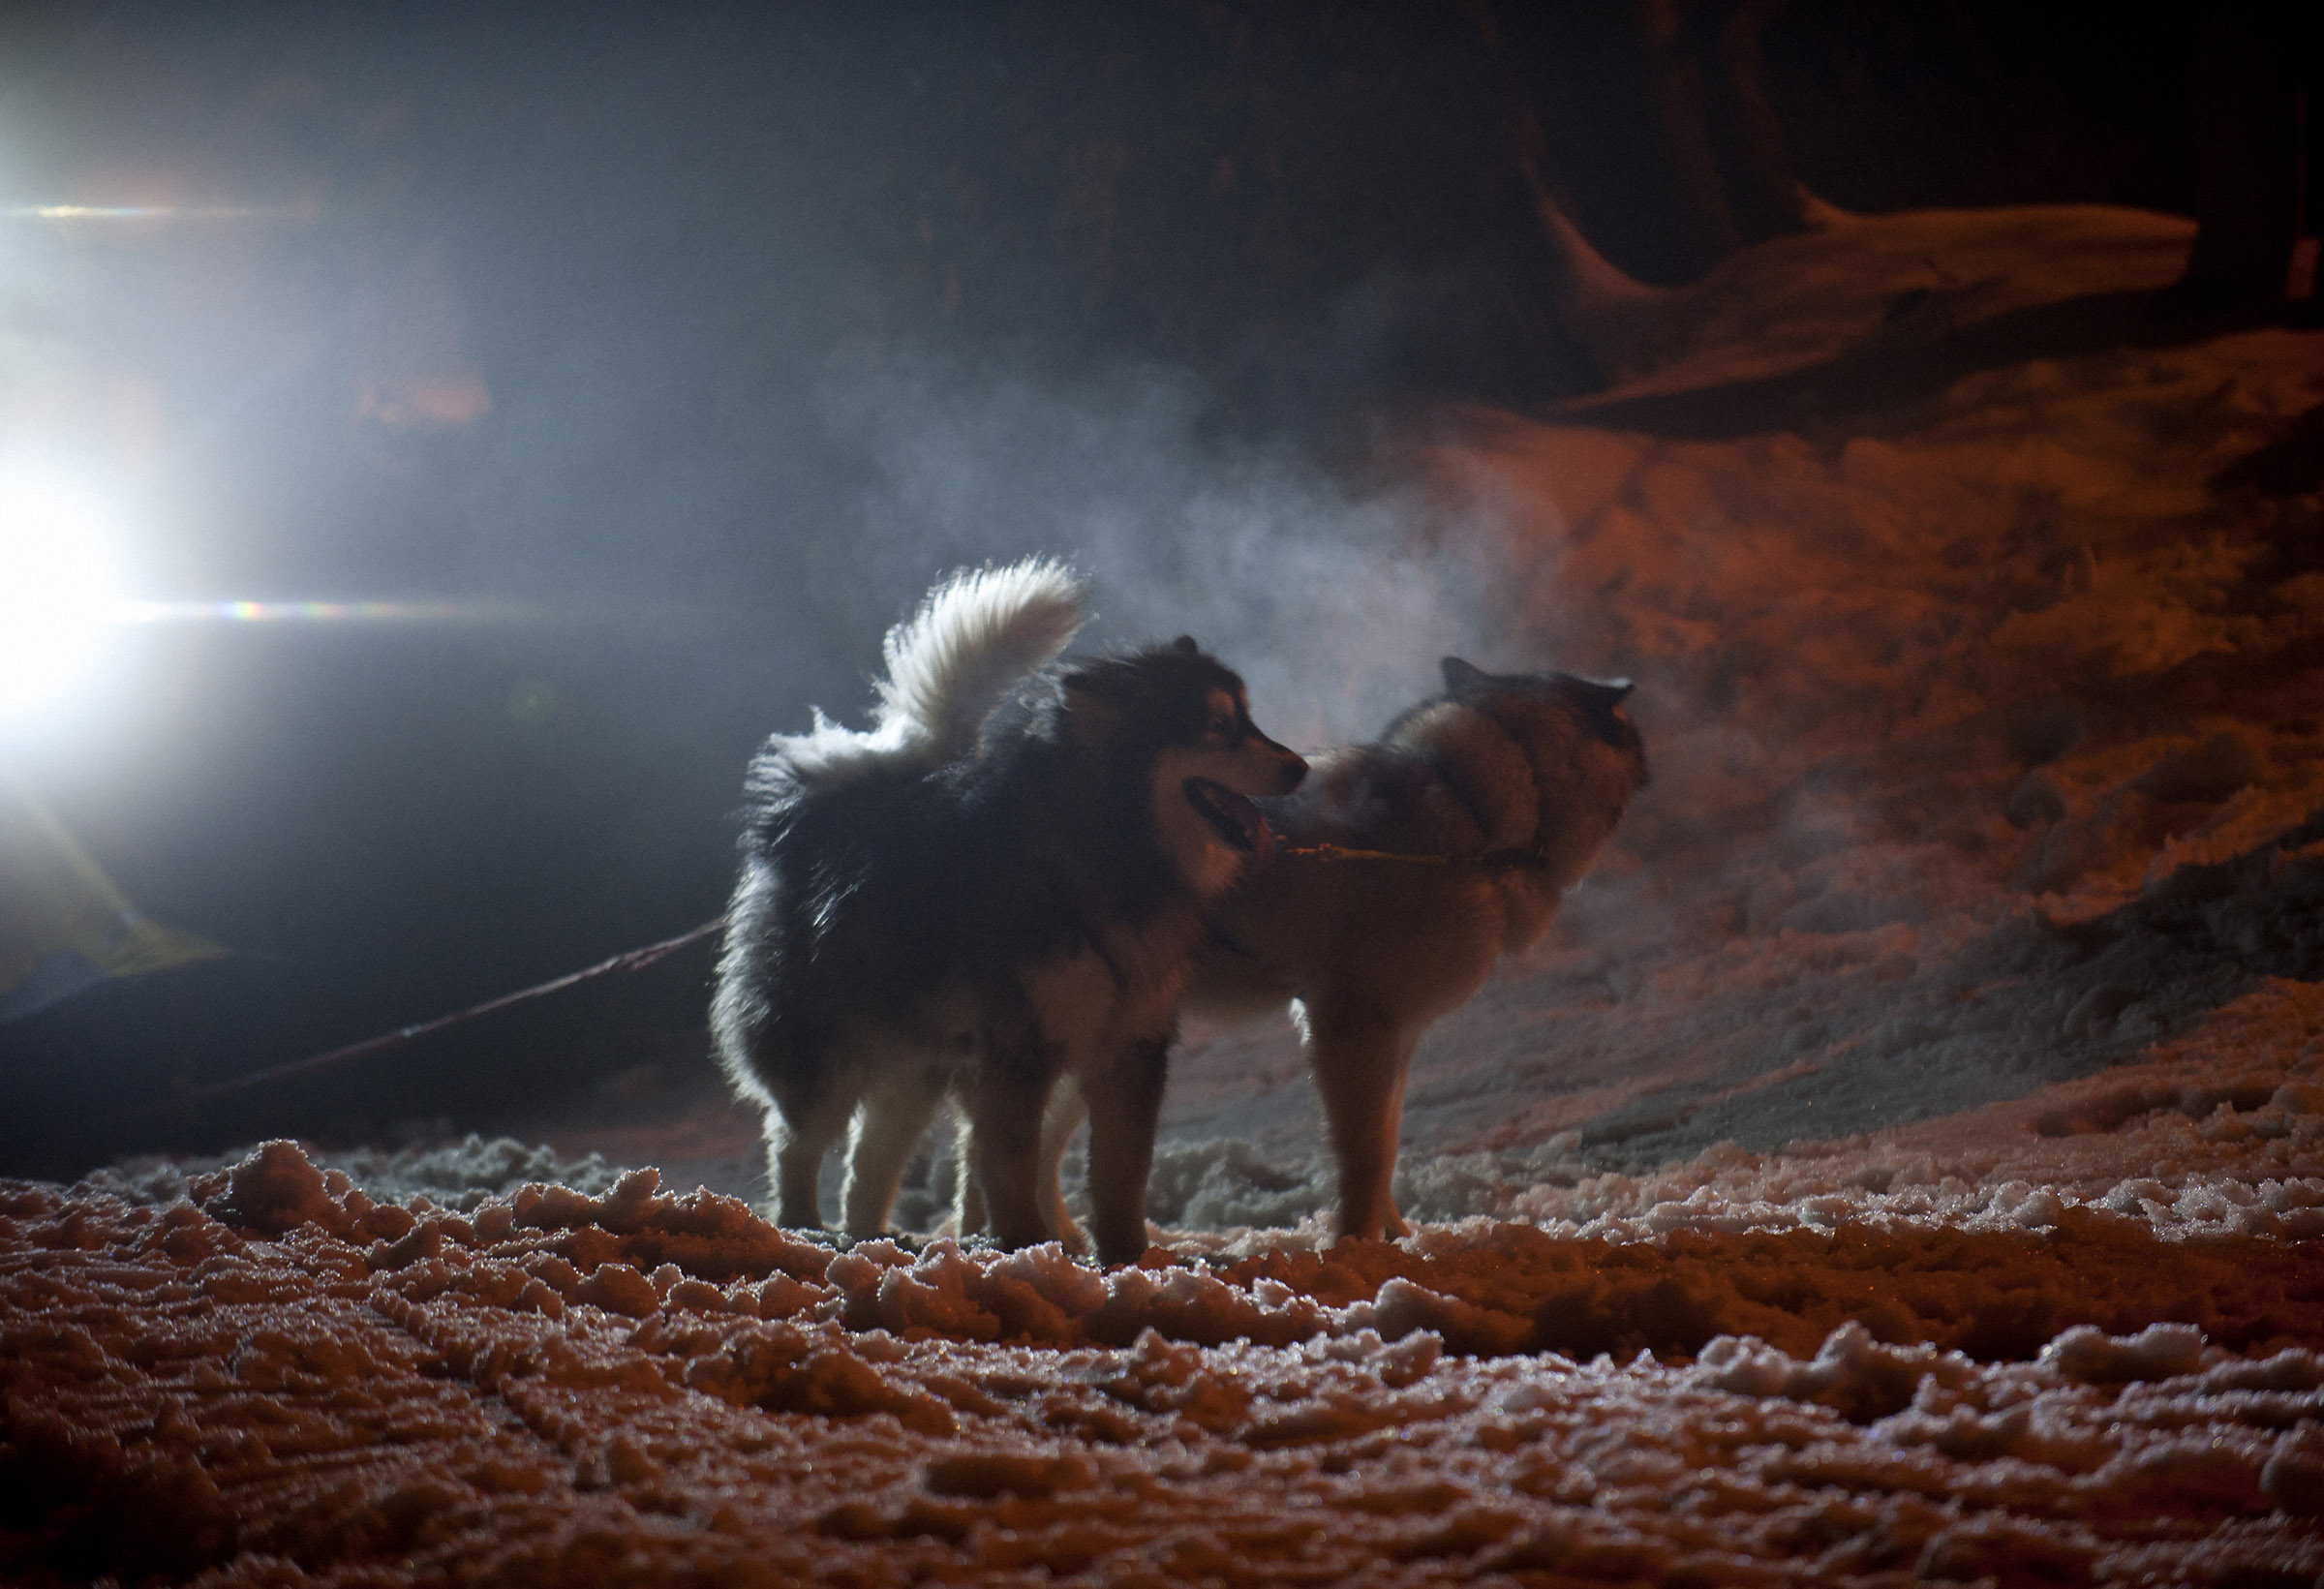 Dogs in the snow at night.